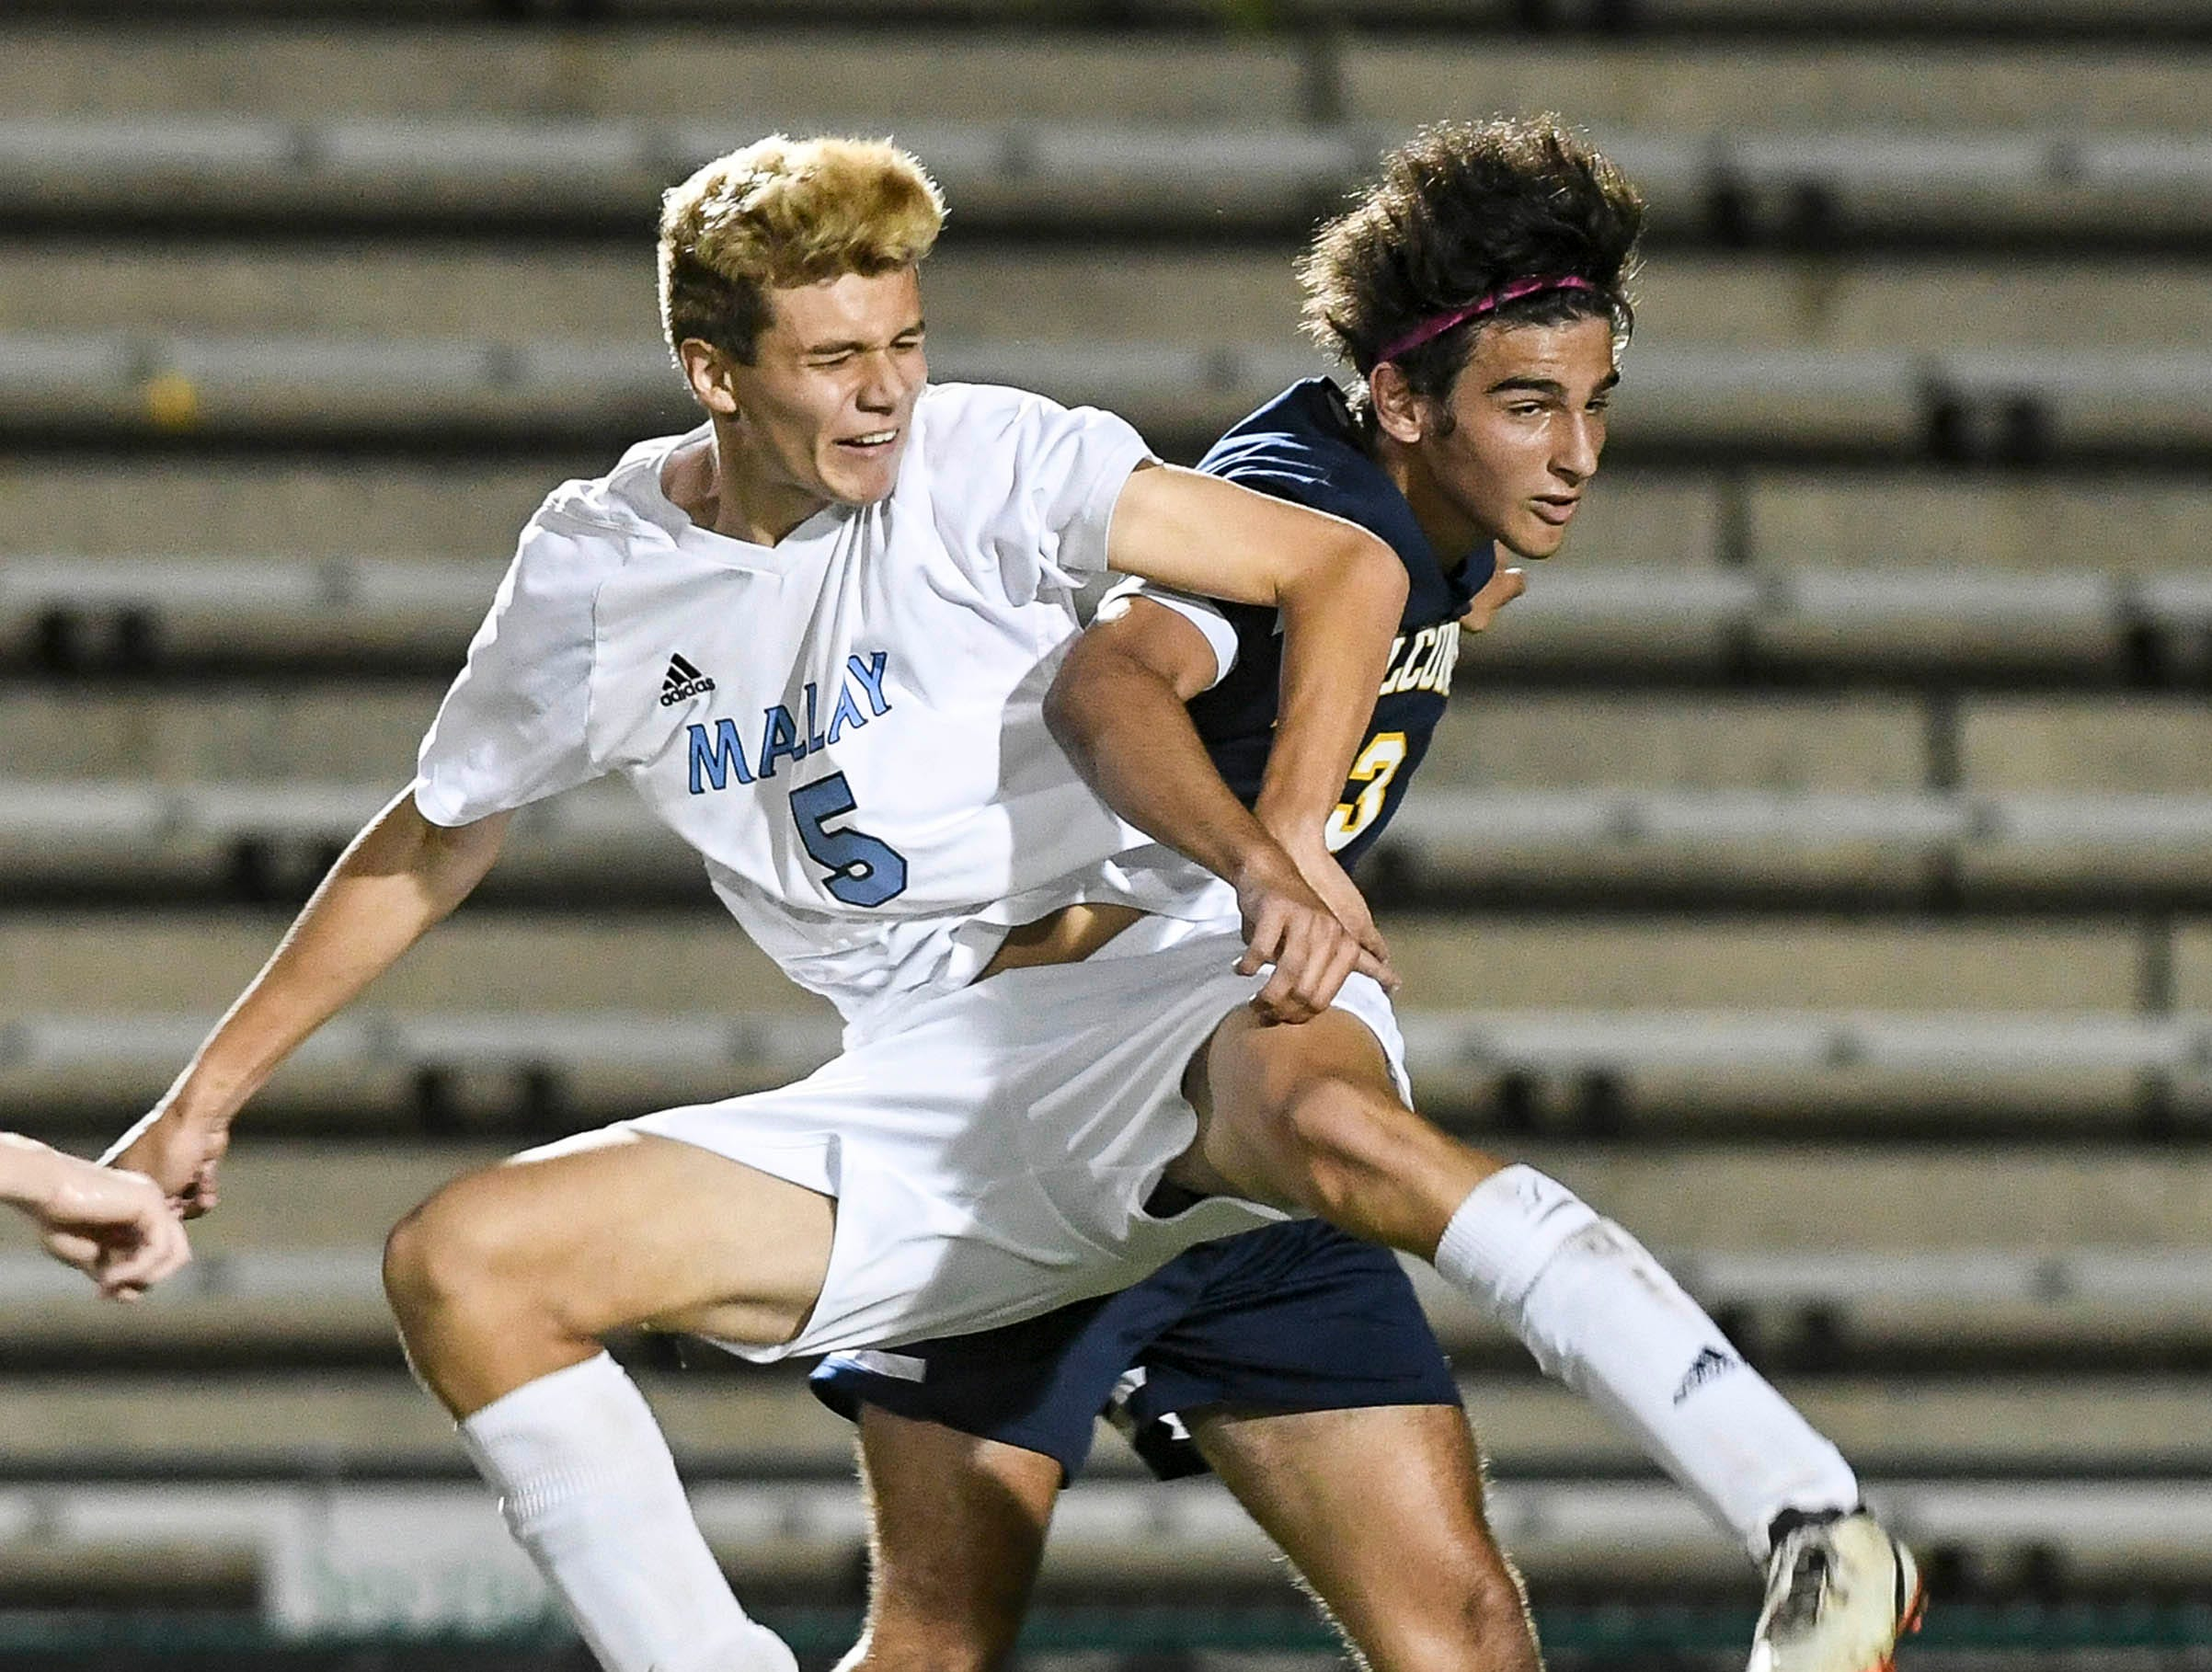 Alex Guzman of Maclay and Marco Campiani of Palmer Trinity battle for the ball in the air during Thursday's Class 1A boys state soccer final.